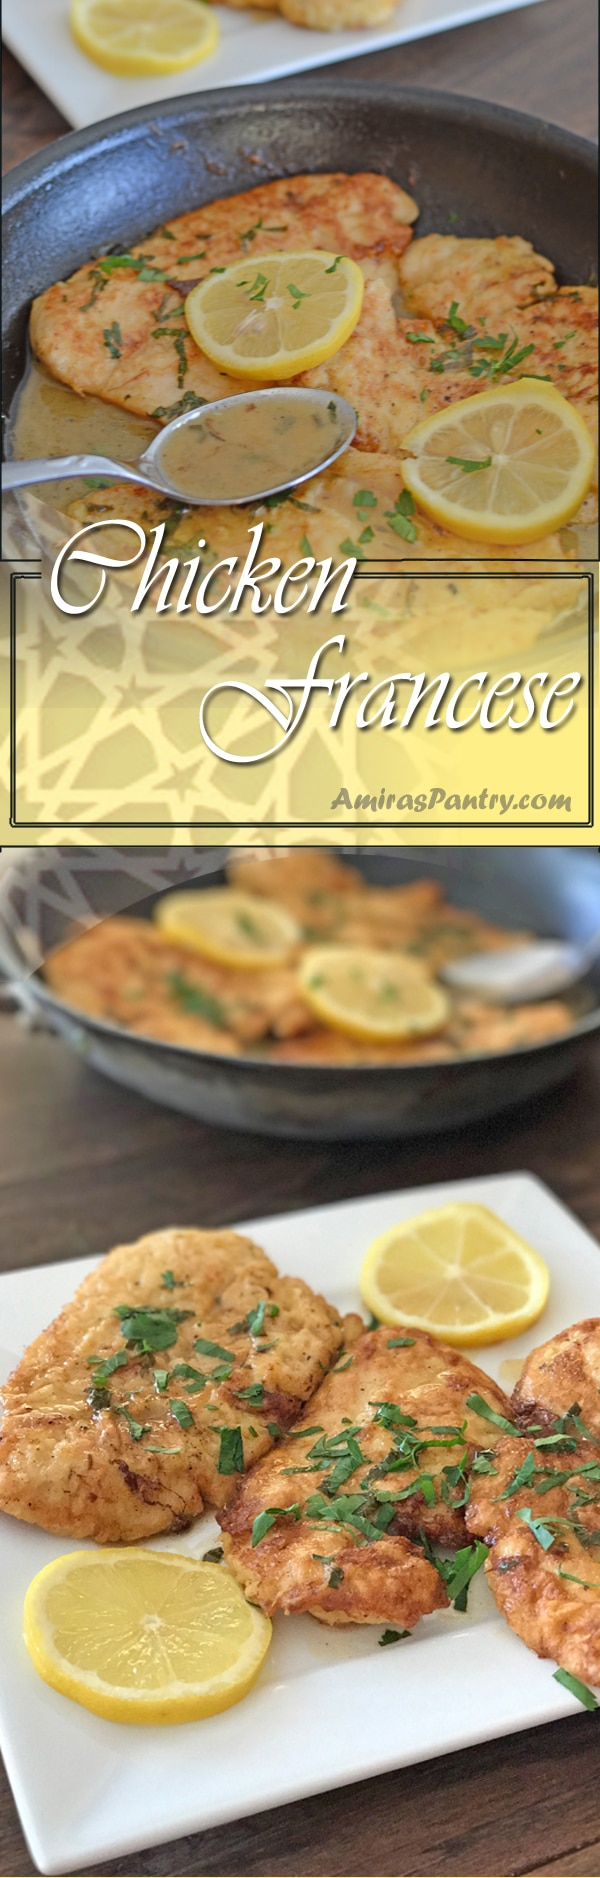 Tender chicken breast, topped with a delicious lemony buttery sauce a family favorite no wine chicken francese.